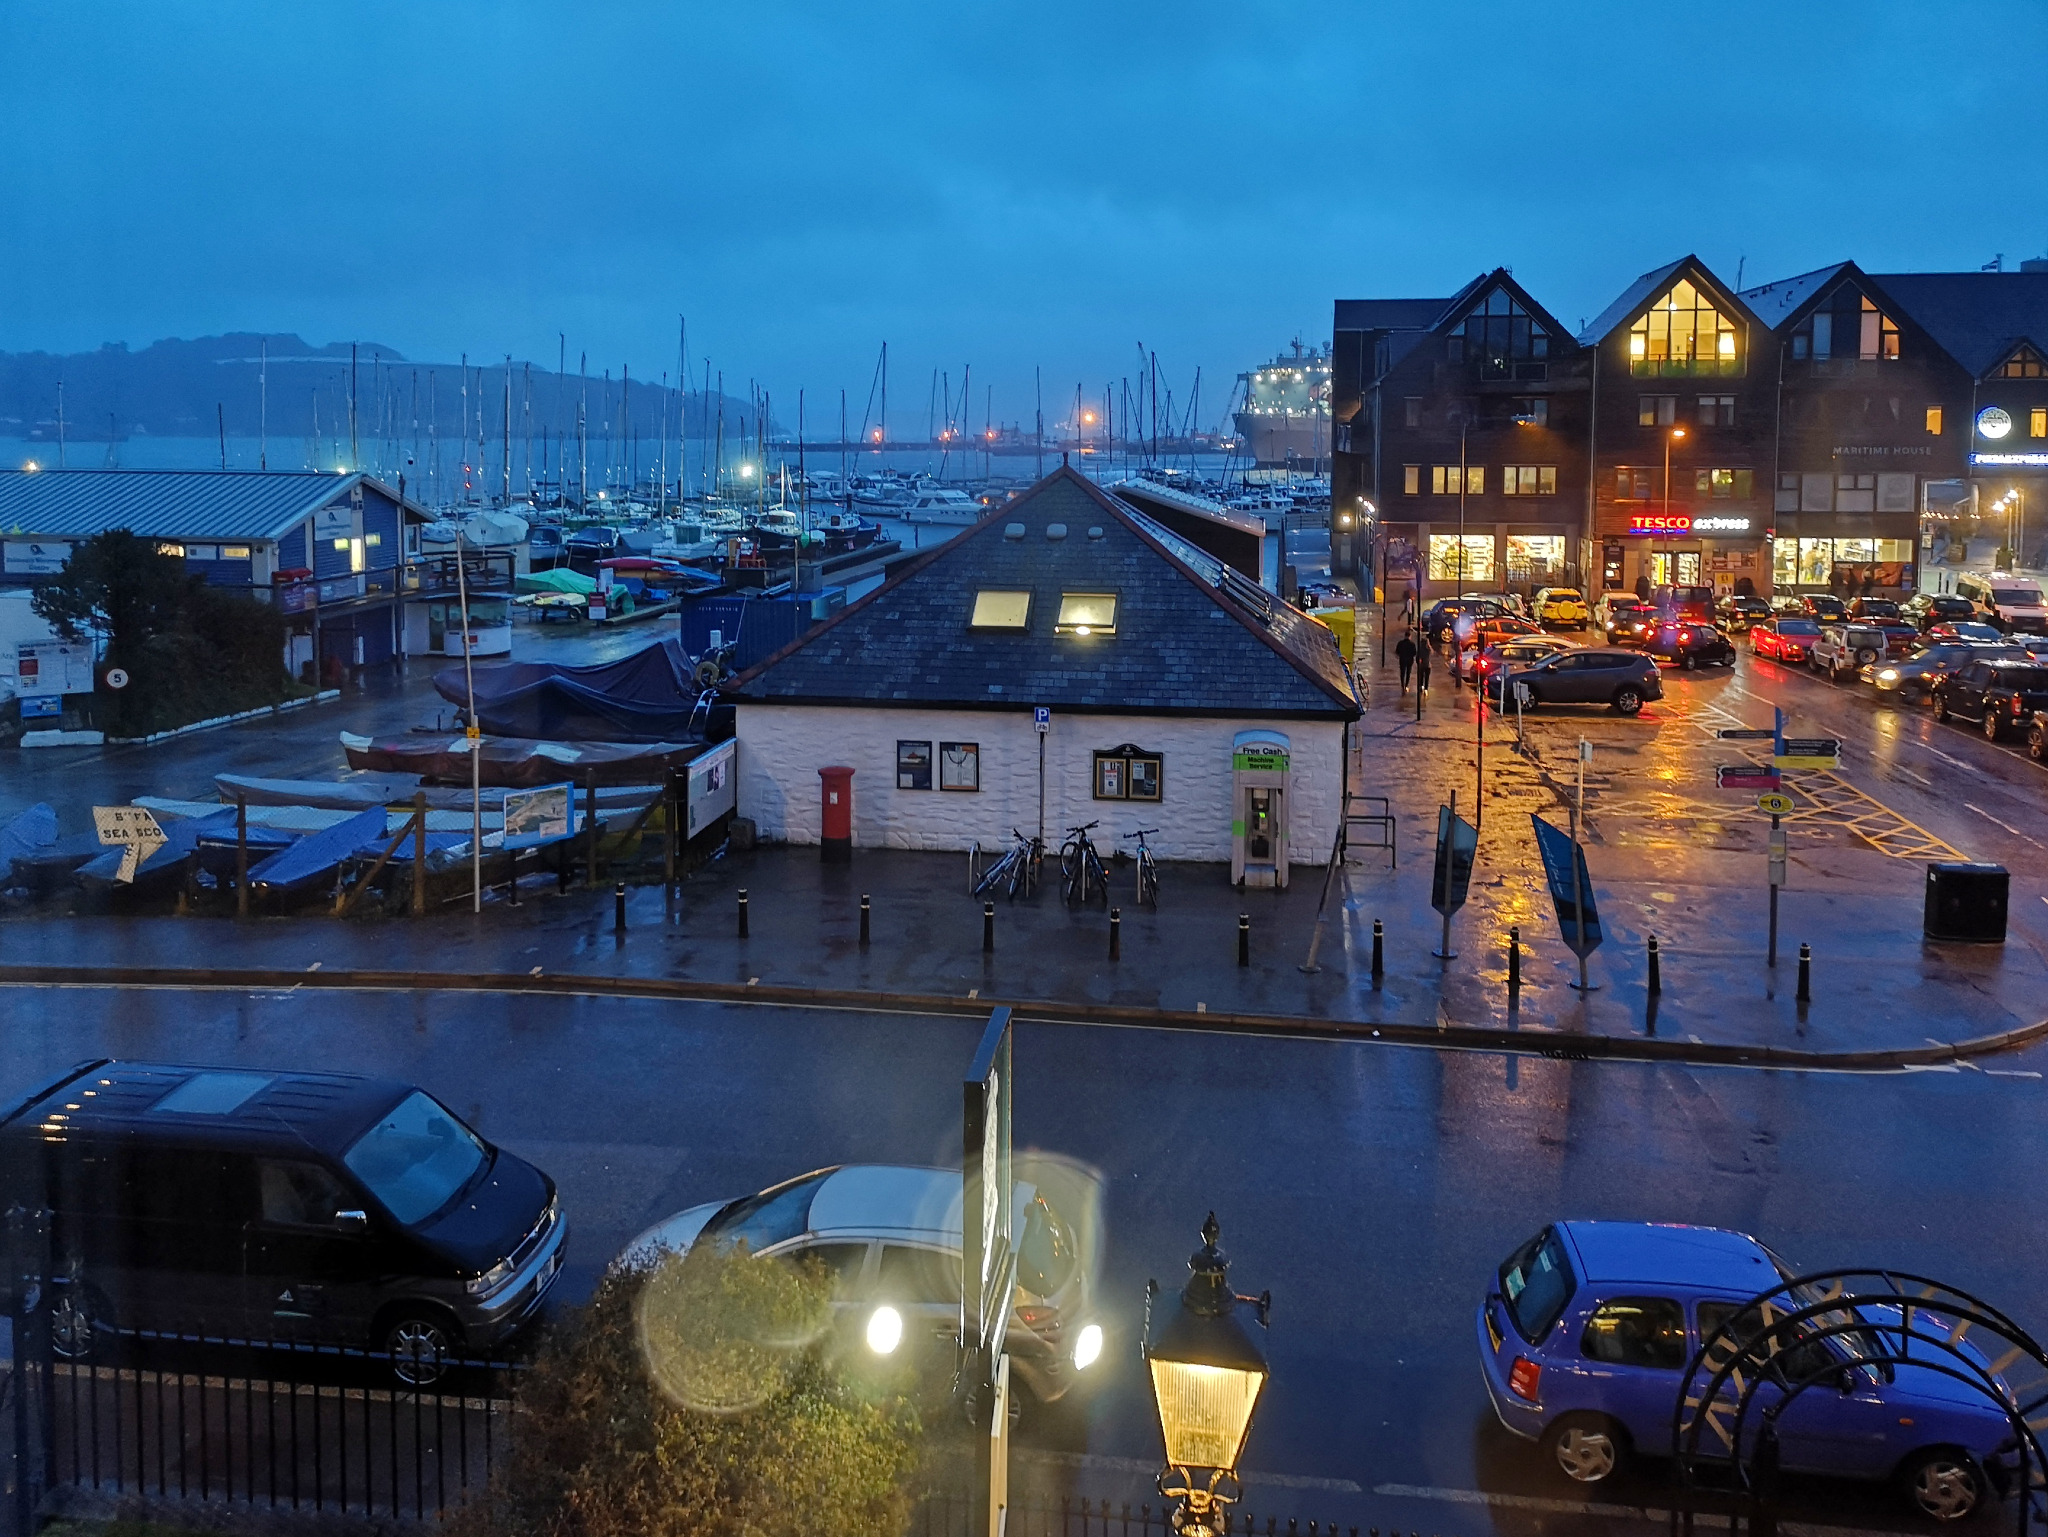 A rain-swept Falmouth taken from a B&B window, taken by Graham Land on his mobile phone on arrival  5th March, 2019